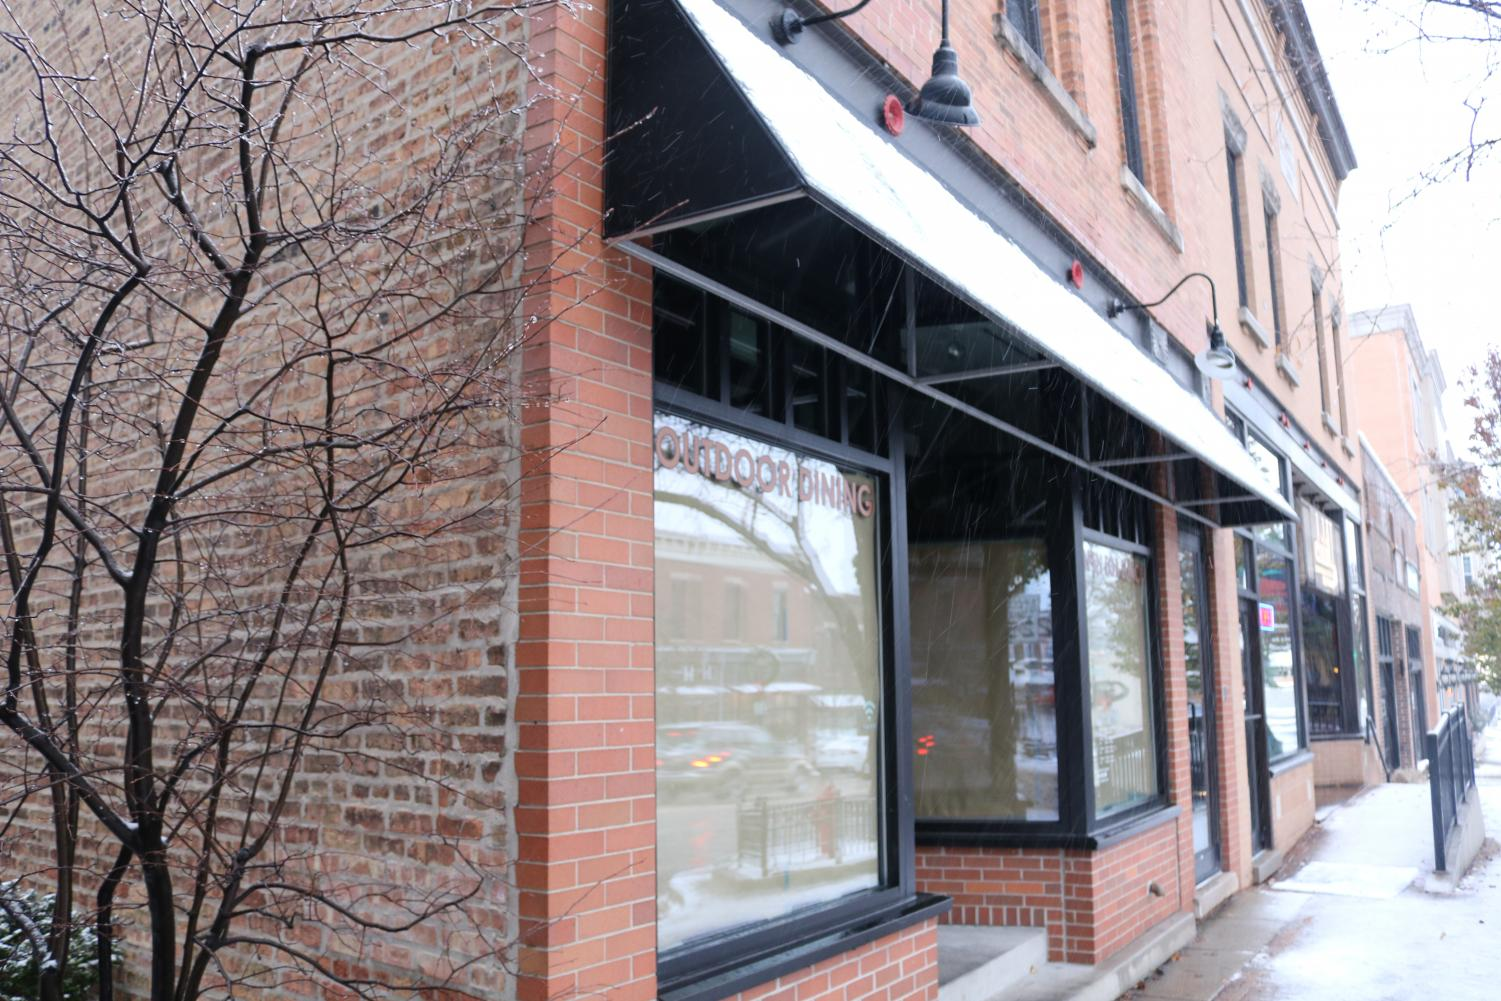 545 North has already started to clear out its restaurant, Burnsies Uptown is expected to open in early 2019. They will serve breakfast and lunch at first, then move to dinner later in the year.